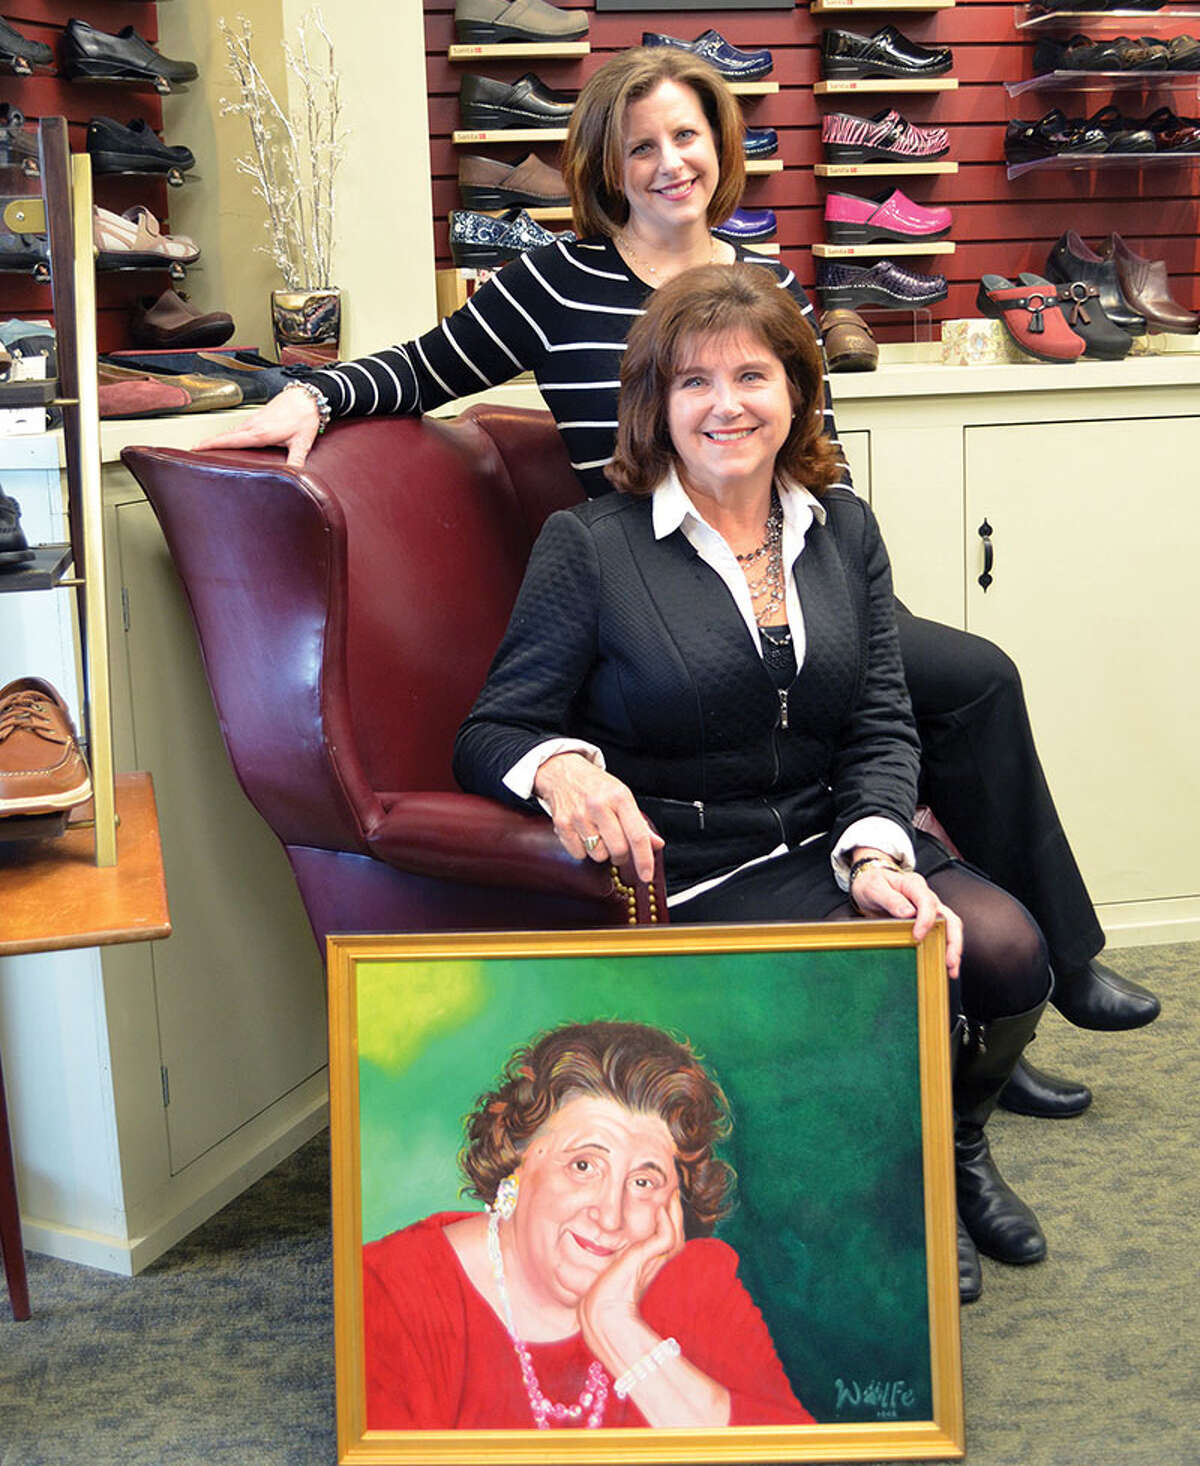 Three generations of the Leonardo family have combined to make Delmar Bootery a small business success story: Pictured are Mandy Sundling-Young, Gail Leonardo Sundling with a portrait of Gail's mom Jessie Leonardo. (Provided)